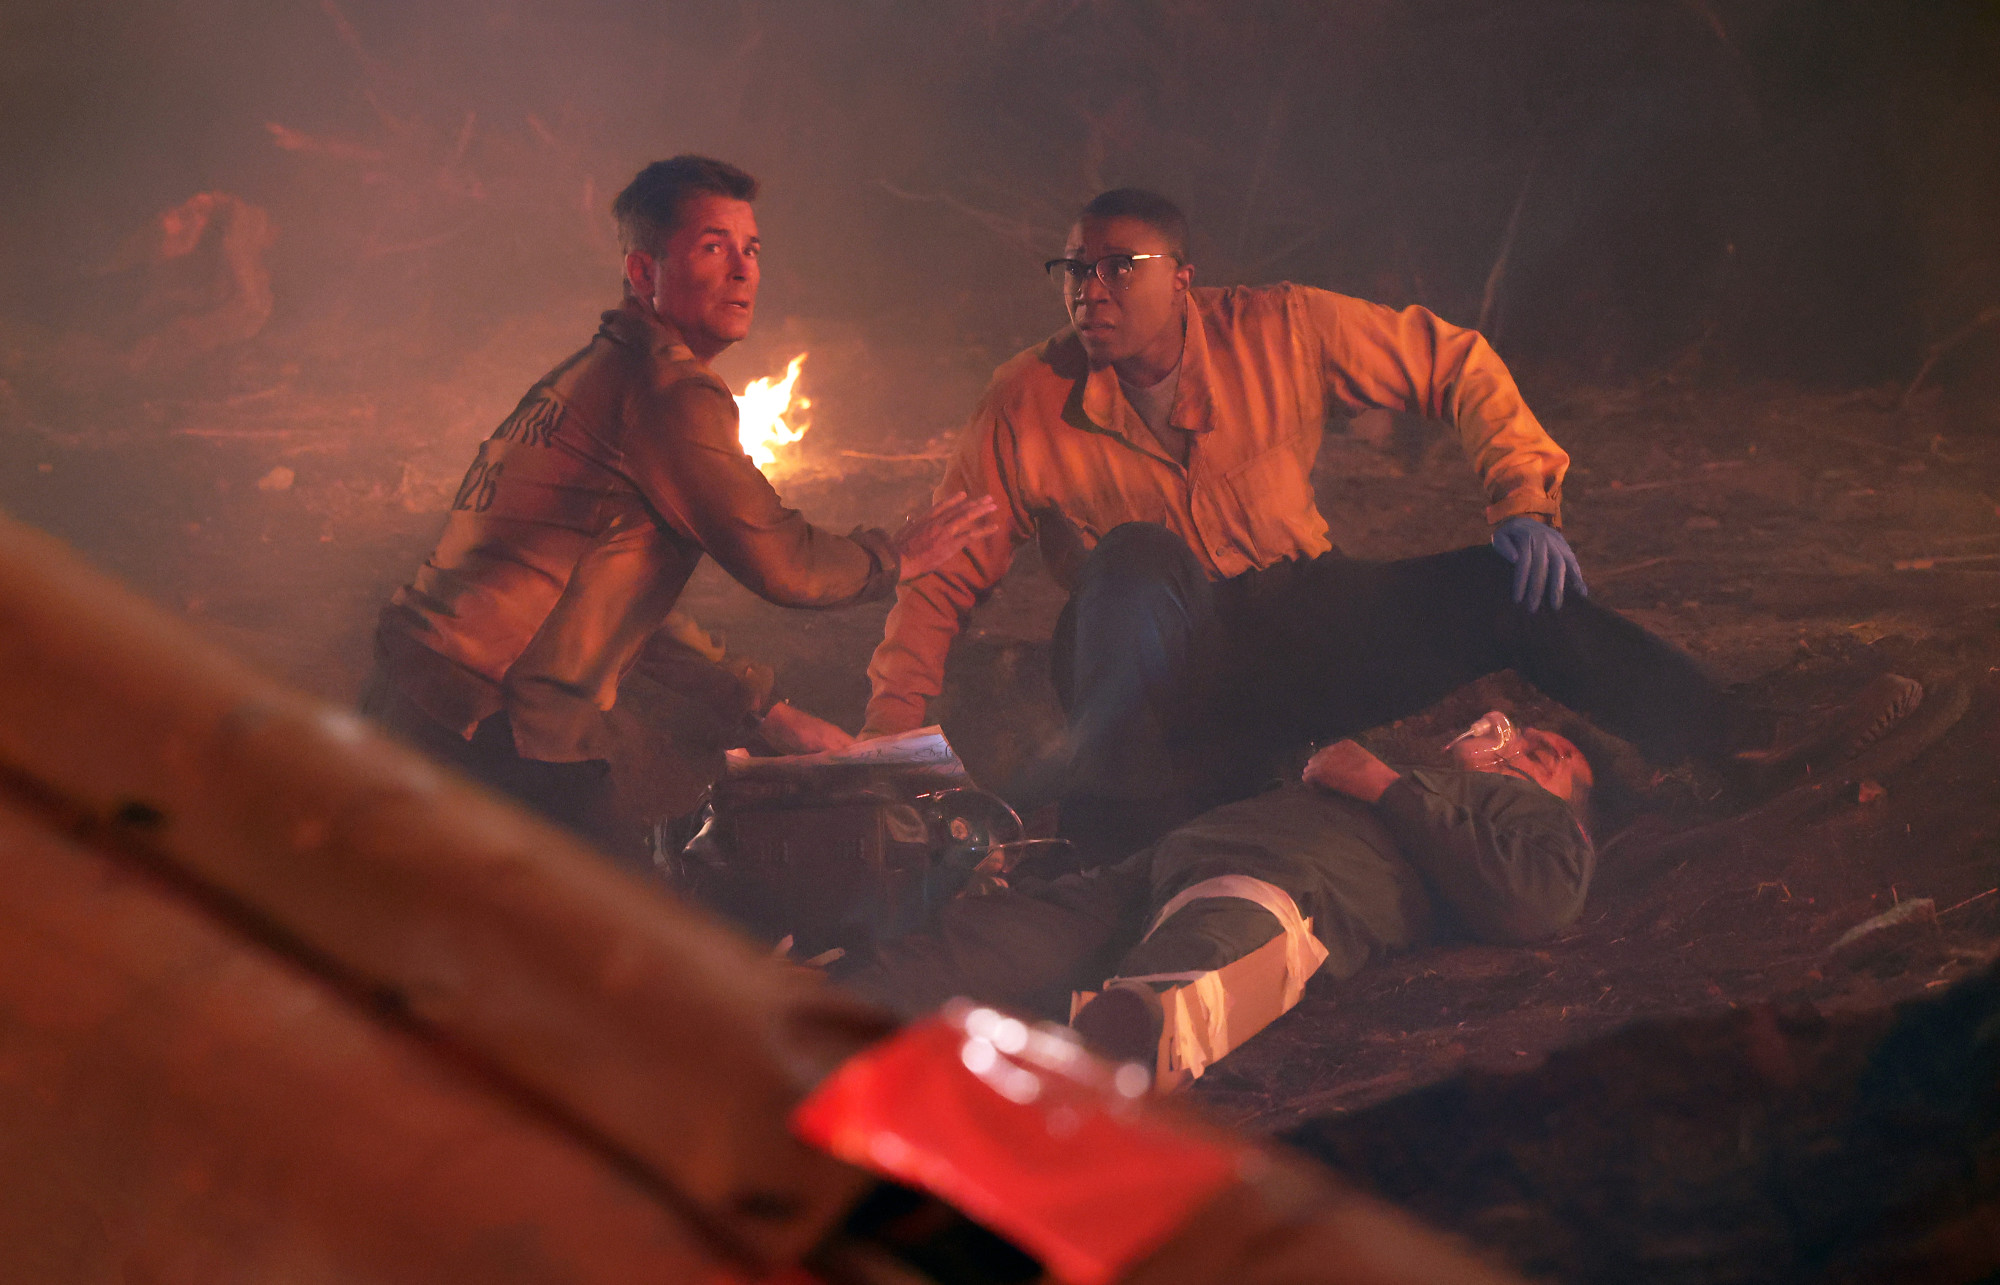 """9-1-1: LONE STAR: L-R: Rob Lowe and special guest star Aisha Hinds in the """"Hold The Line"""" episode of 9-1-1: LONE STAR airing Monday, Feb. 1 (9:01-10:00 PM ET/PT) on FOX. © 2021 Fox Media LLC. CR: Jordin Althaus/FOX."""